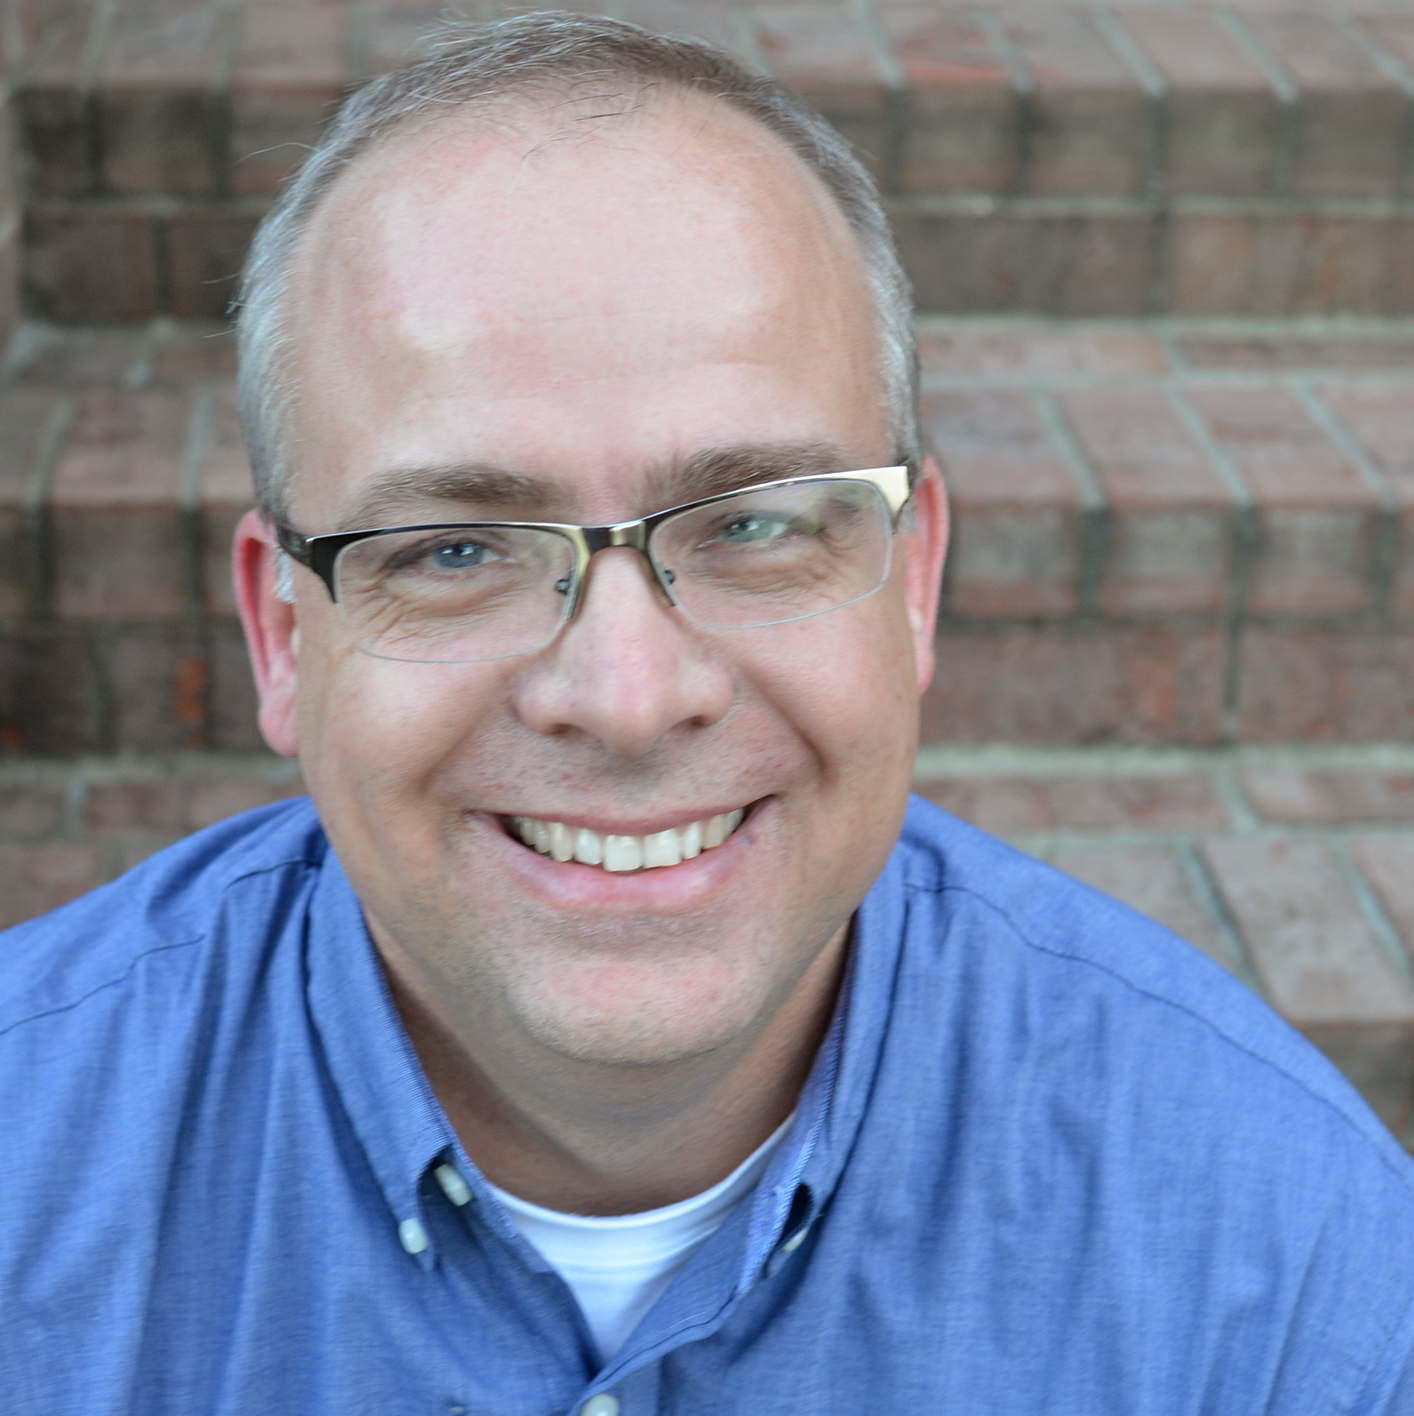 Frank Bunner, LMFT   Licensed Marriage and Family Therapist, License #1105 (TN)  EFT Trained  ICEEFT member